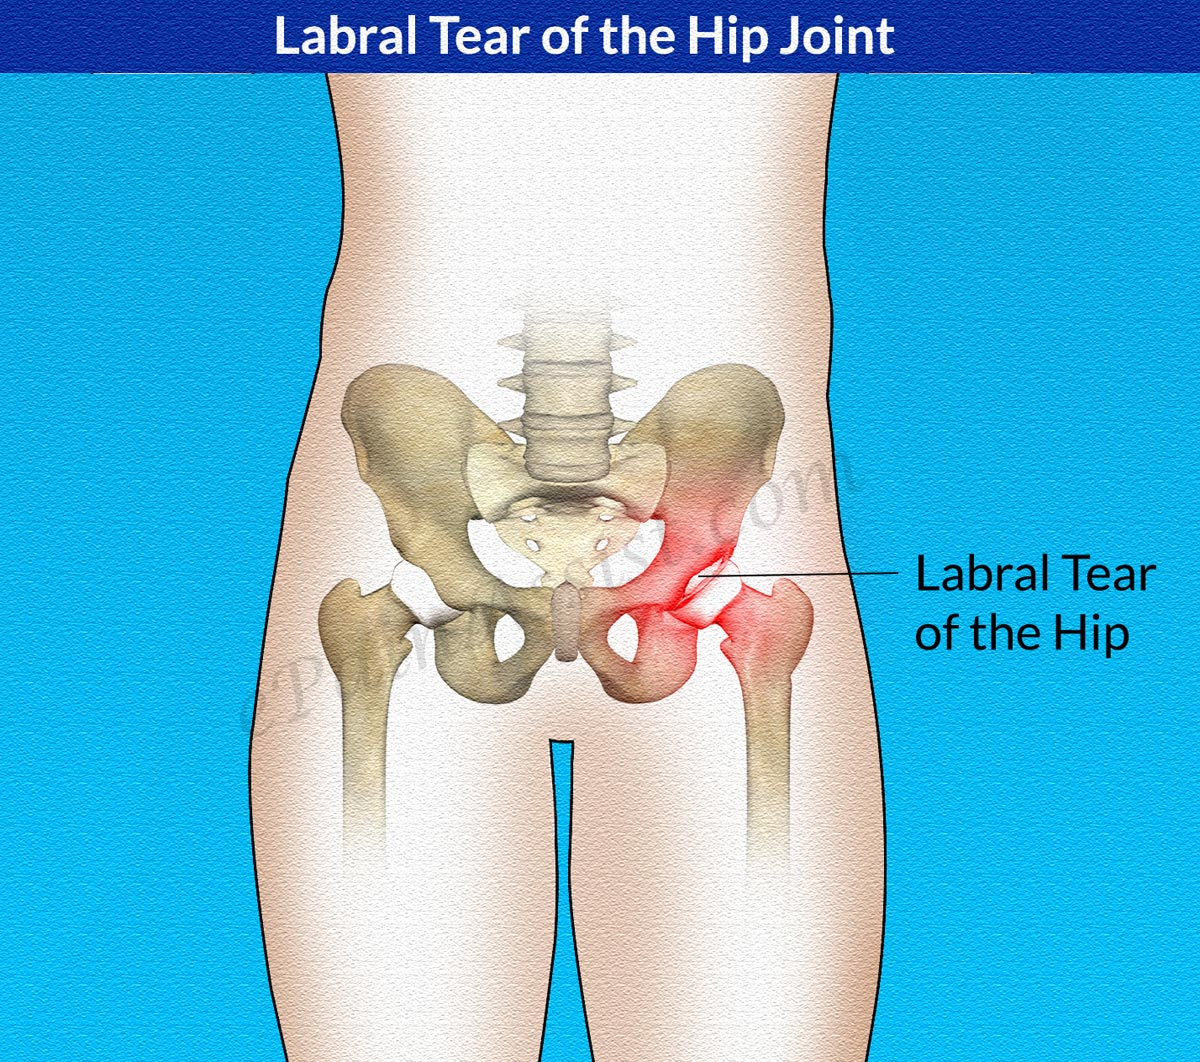 Causes of Labral Tear of the Hip Joint